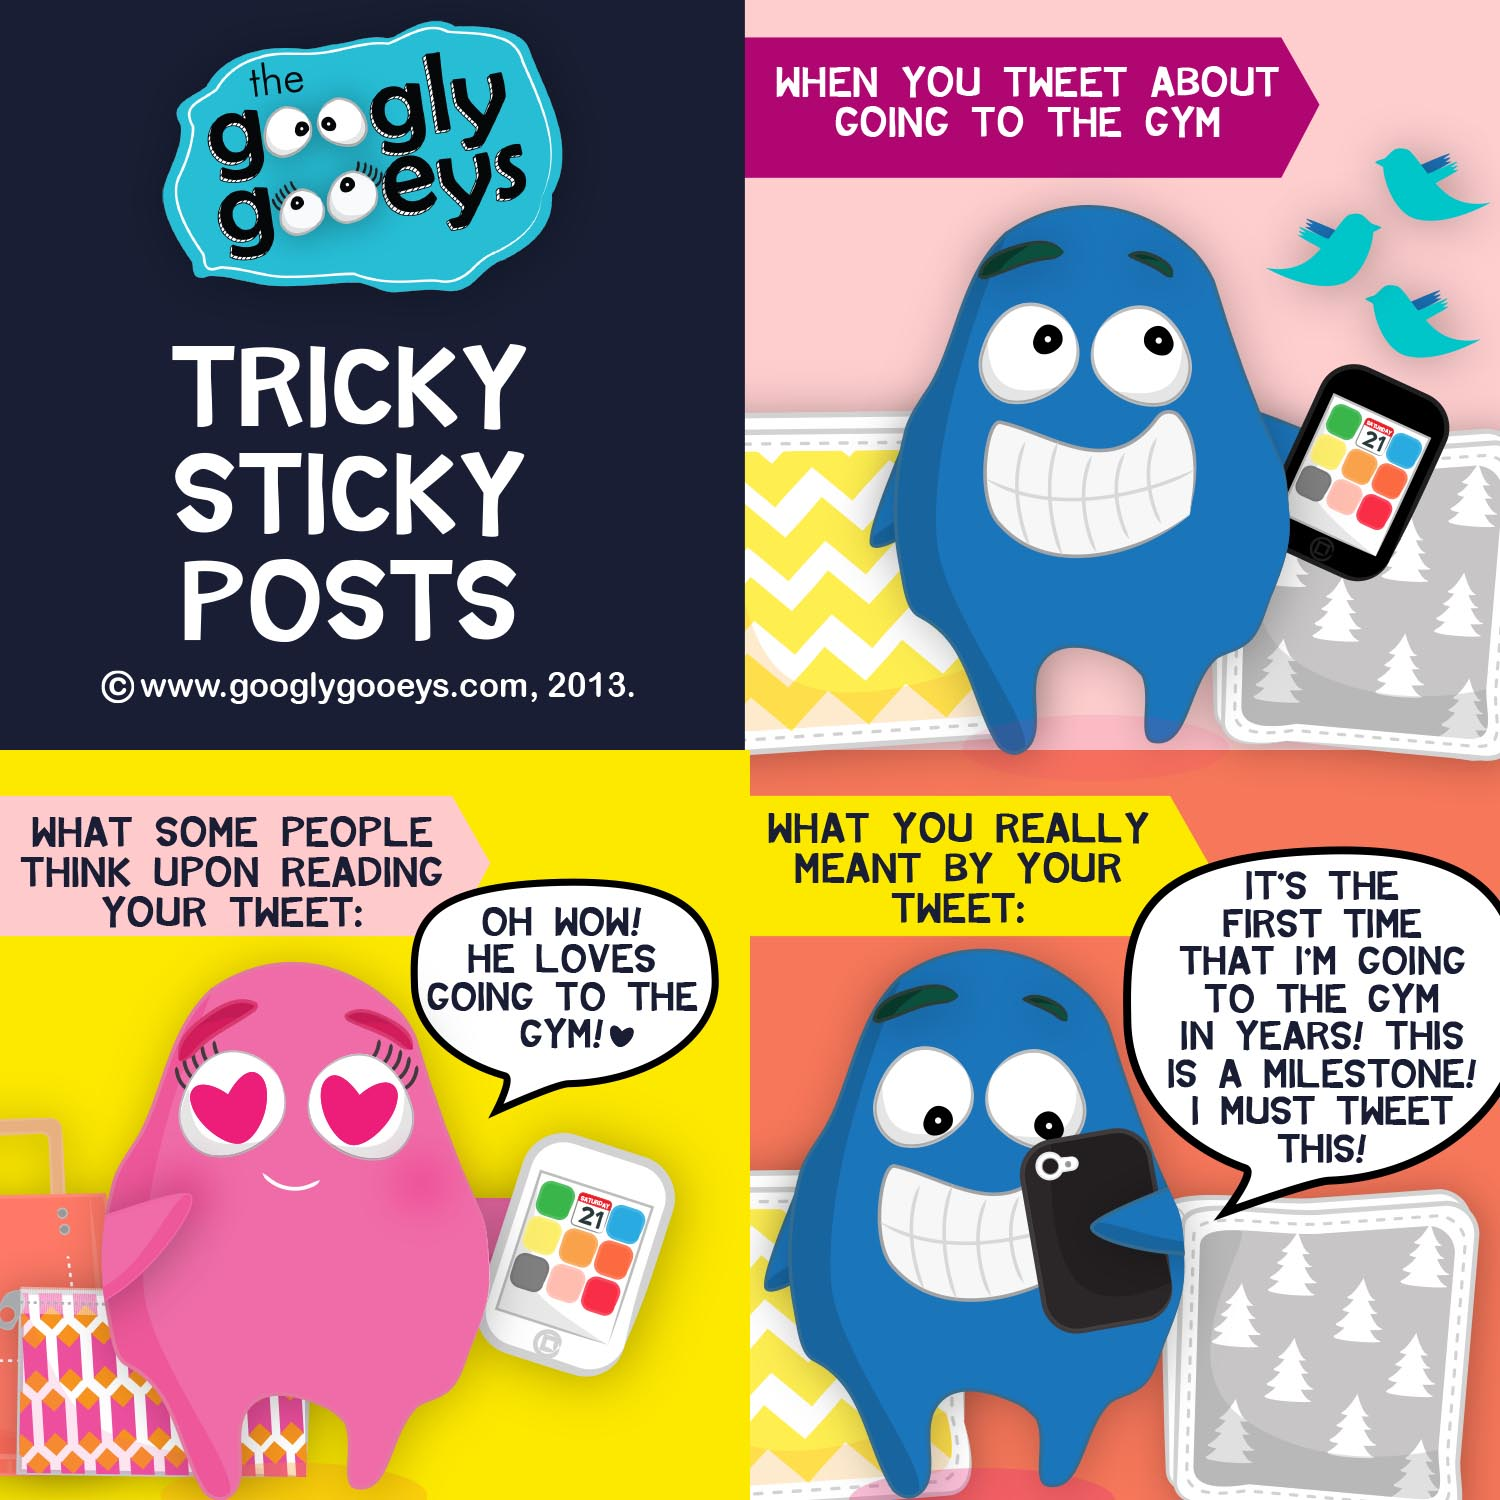 Tricky Sticky Posts: Twitter Versus Real Life